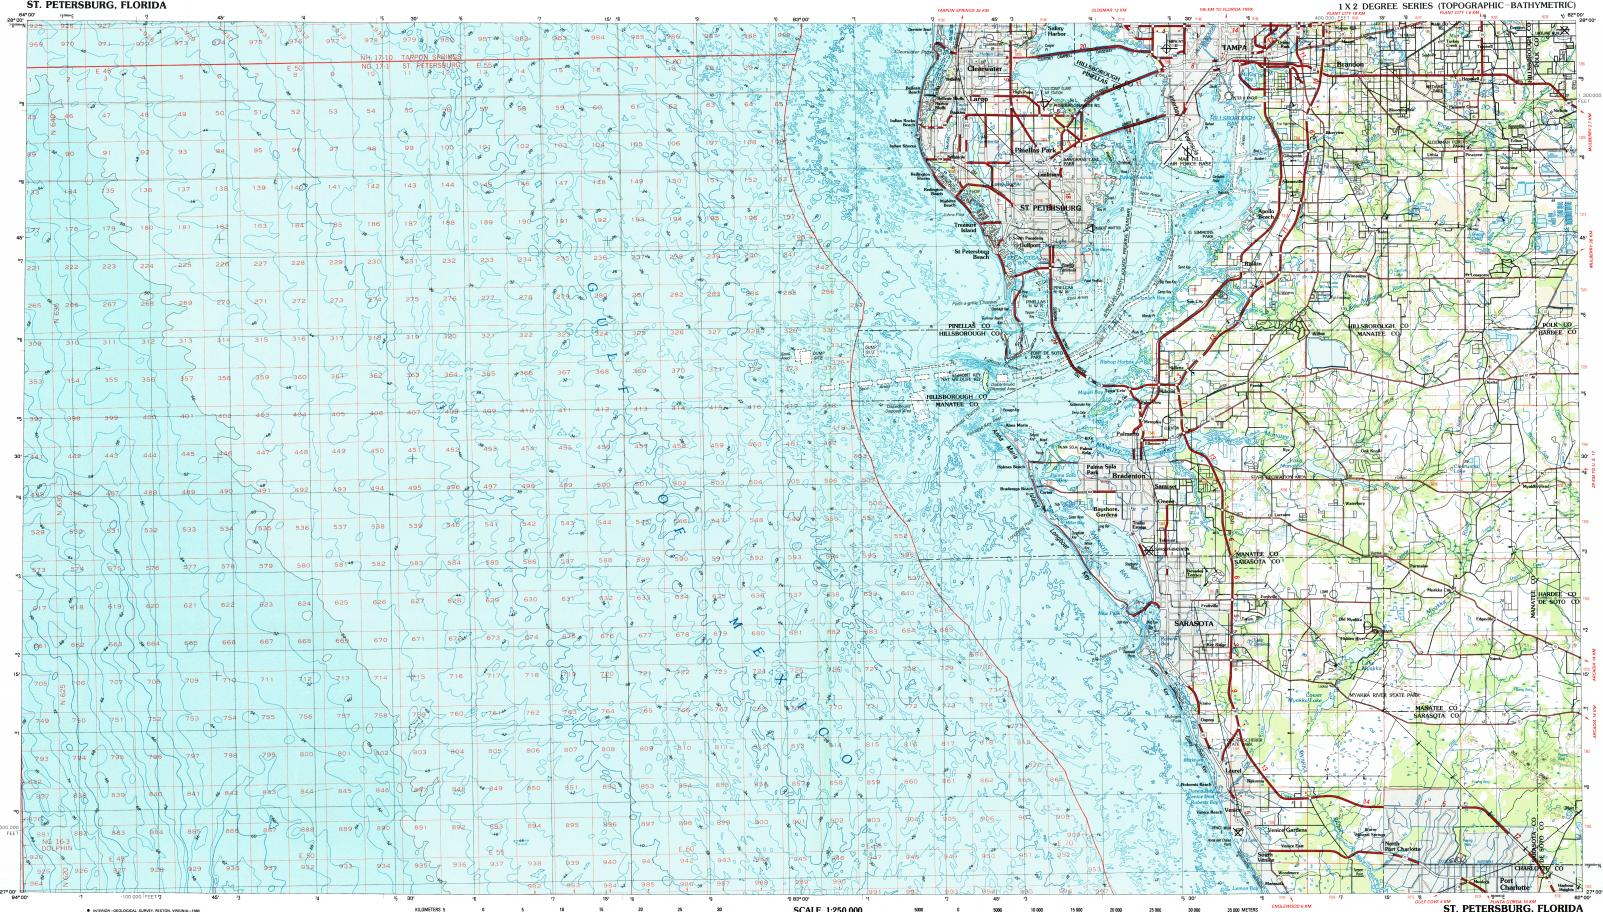 Tampa Topographic Map.Download Topographic Map In Area Of Tampa Sarasota St Petersburg